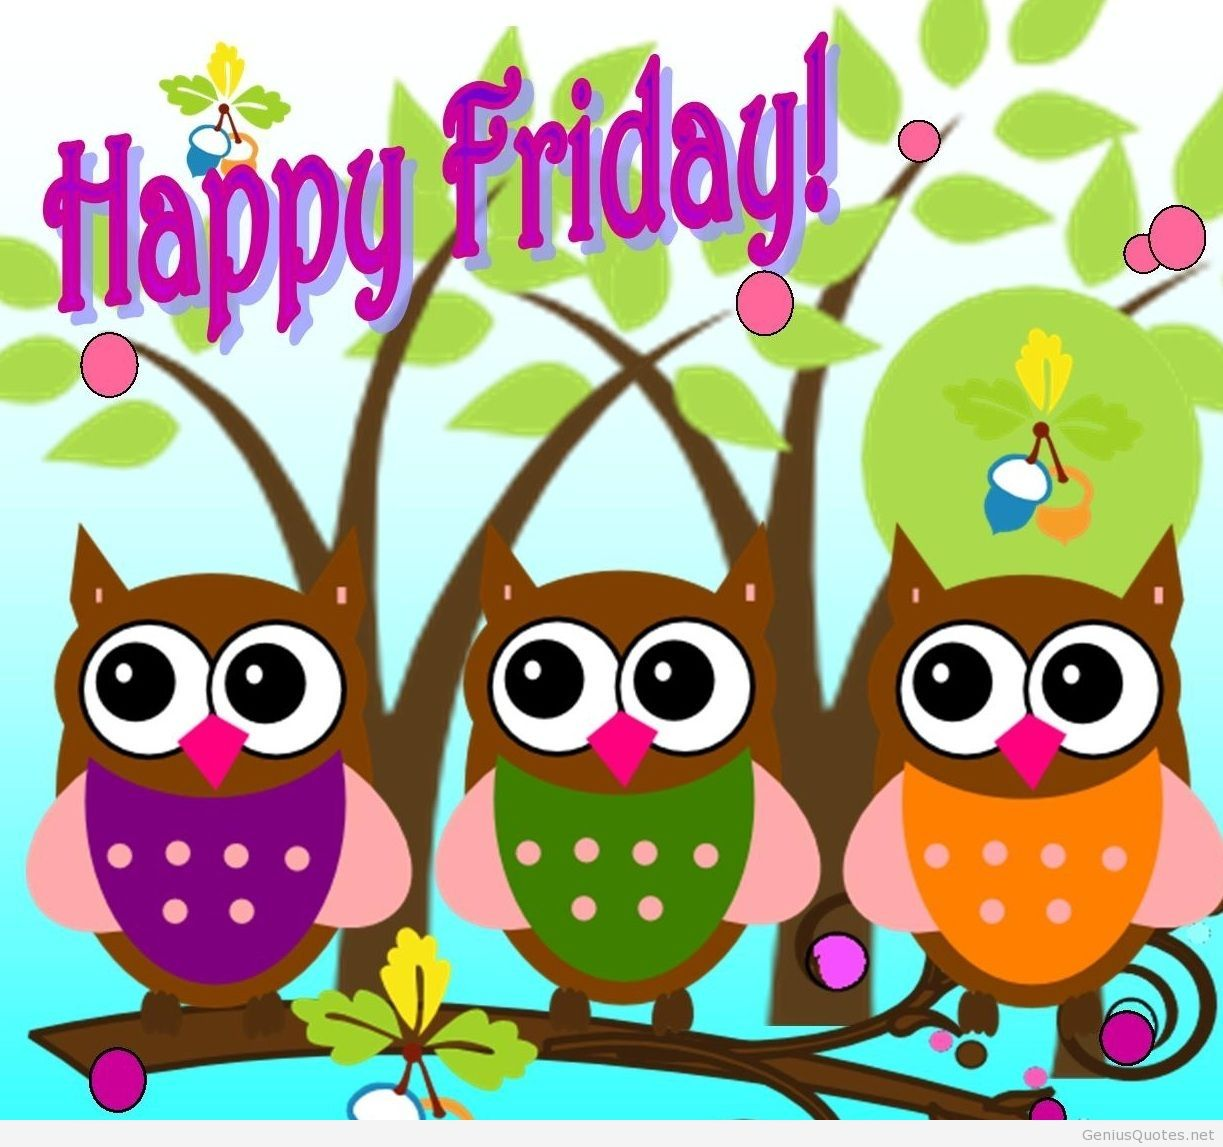 animated happy friday images google search hello friday rh pinterest com happy friday clipart animals happy friday free clipart images